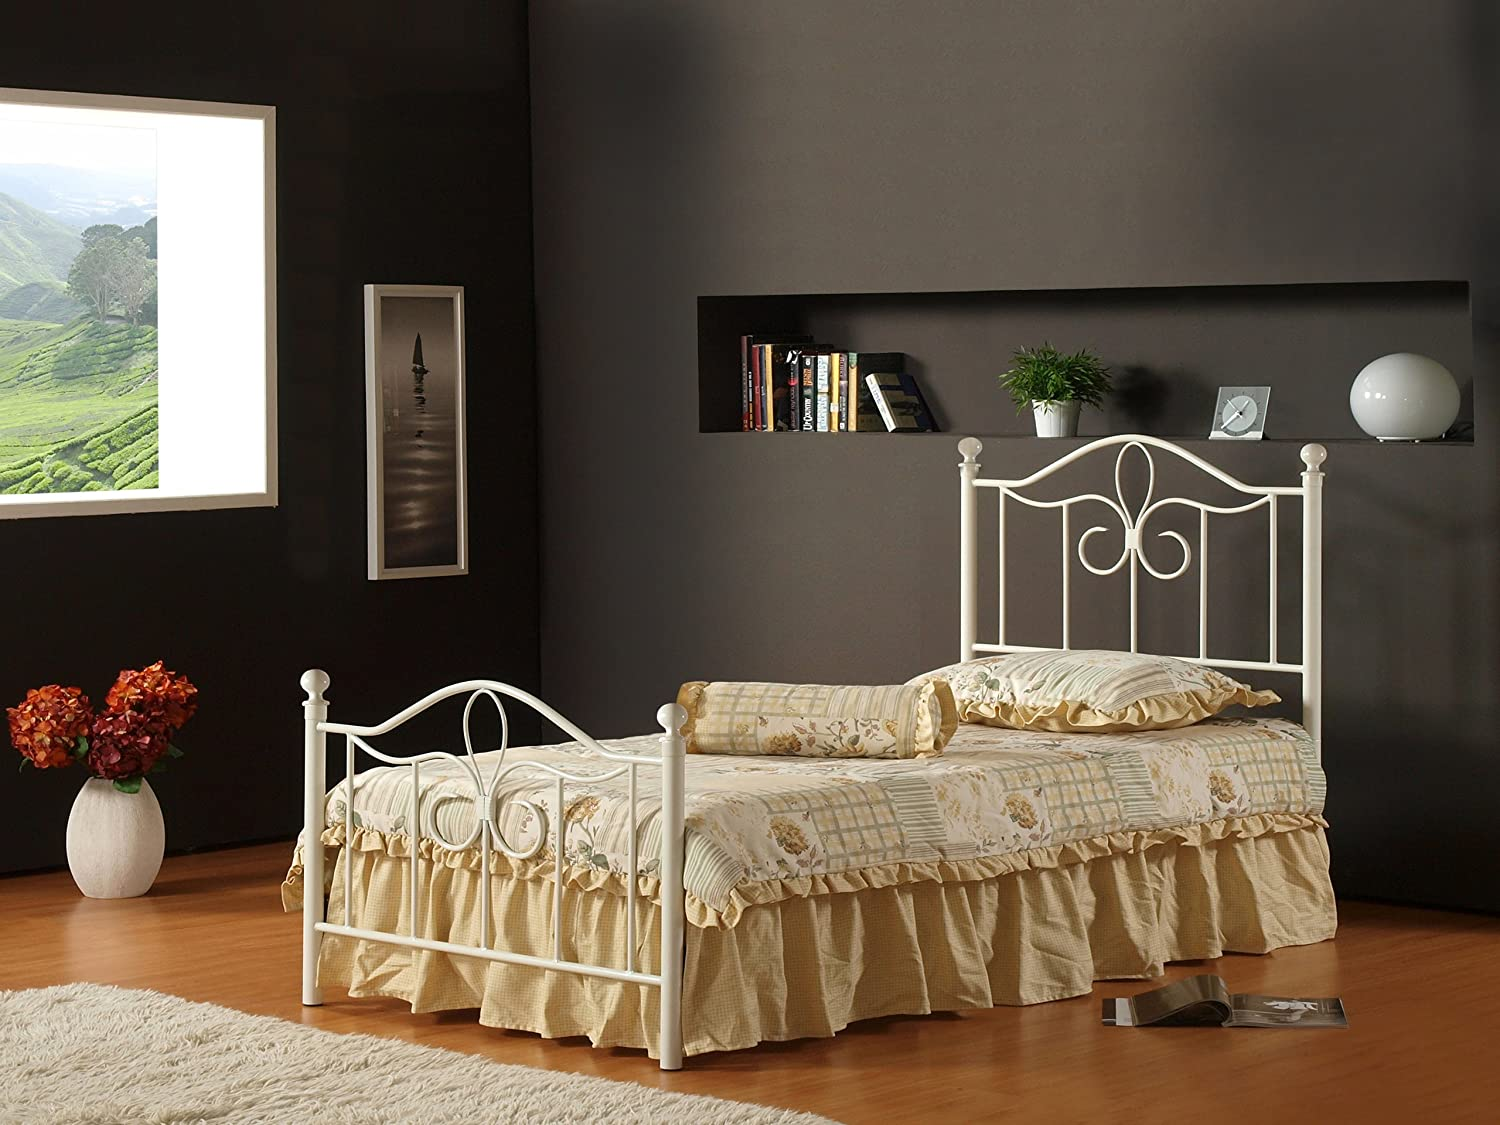 Superior Amazon.com: Hillsdale Furniture 1354BTWMR Westfield Metal Bed Set With  Rails, Twin, Off White: Kitchen U0026 Dining